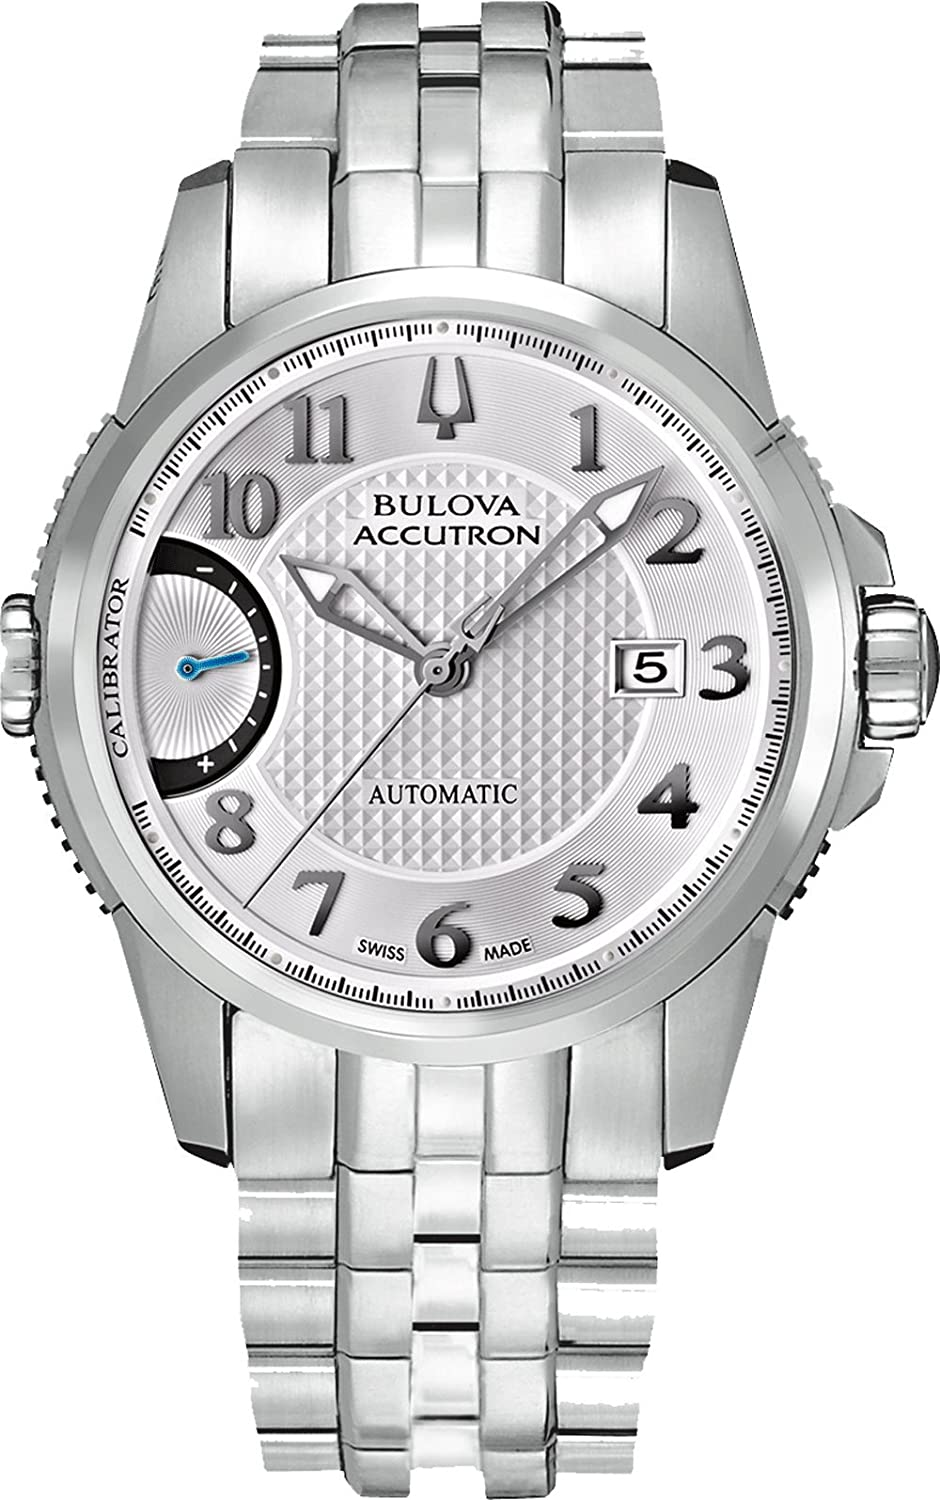 Bulova Accutron Men's Limited Edition Calibrator Bracelet Watch - 63B161